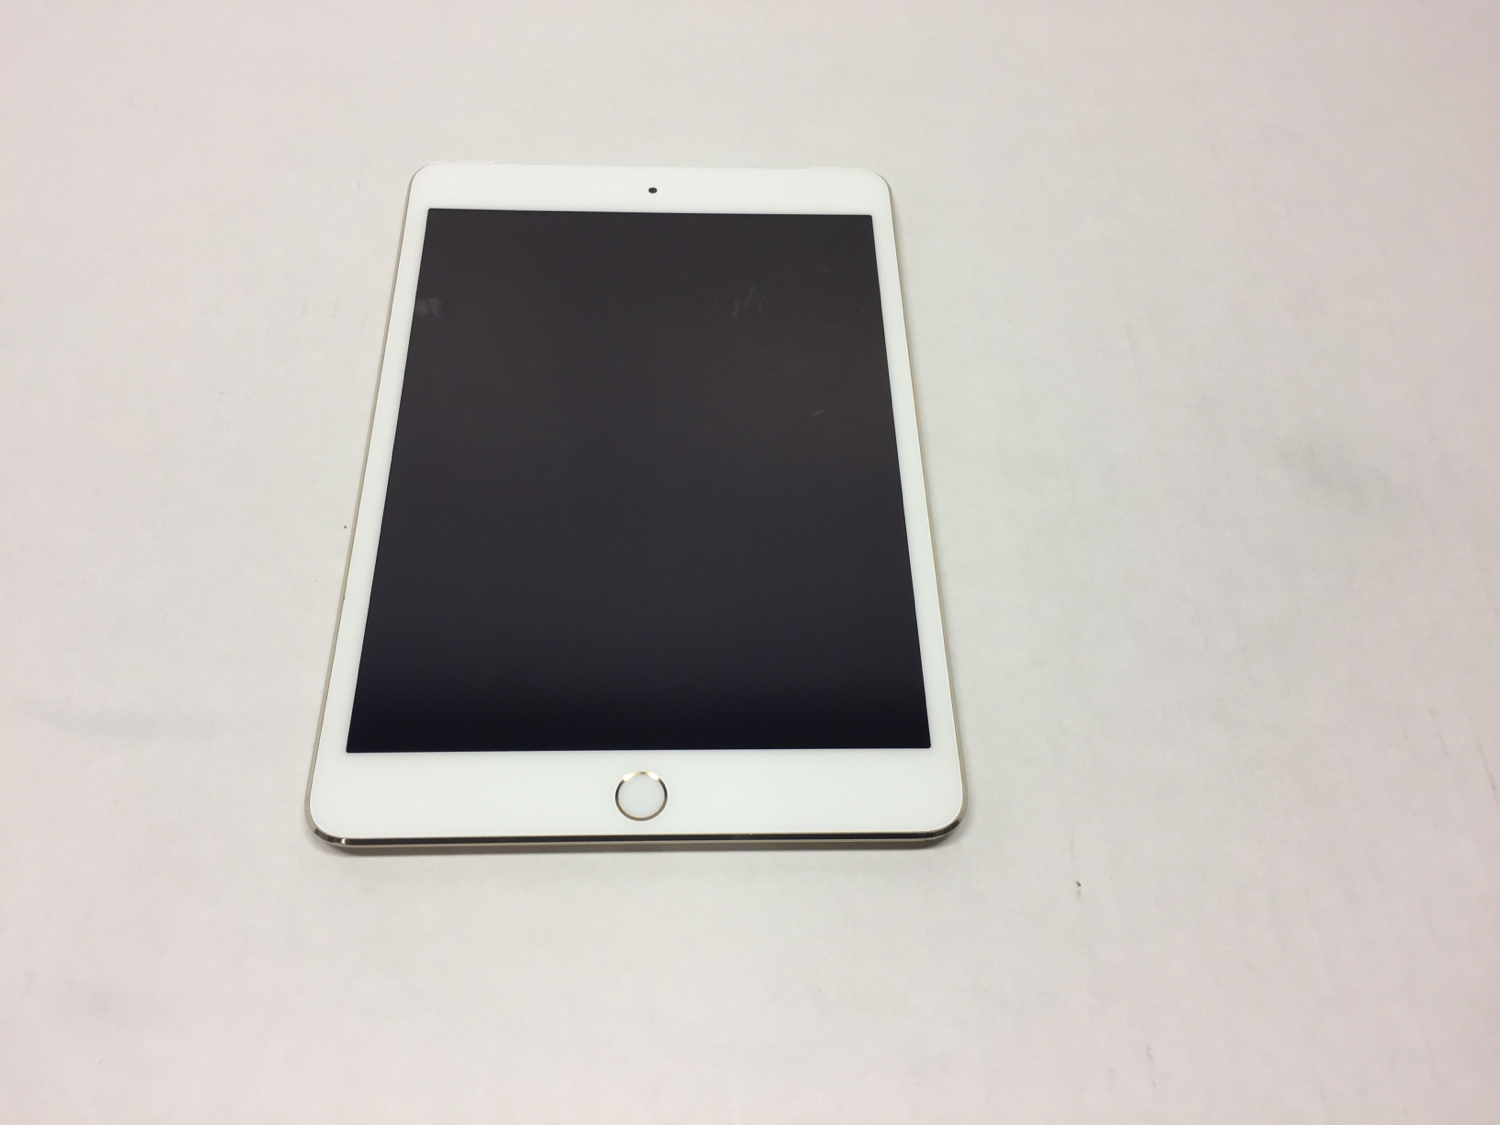 iPad mini 3 Wi-Fi + Cellular 128GB, 128GB, Gold, image 1